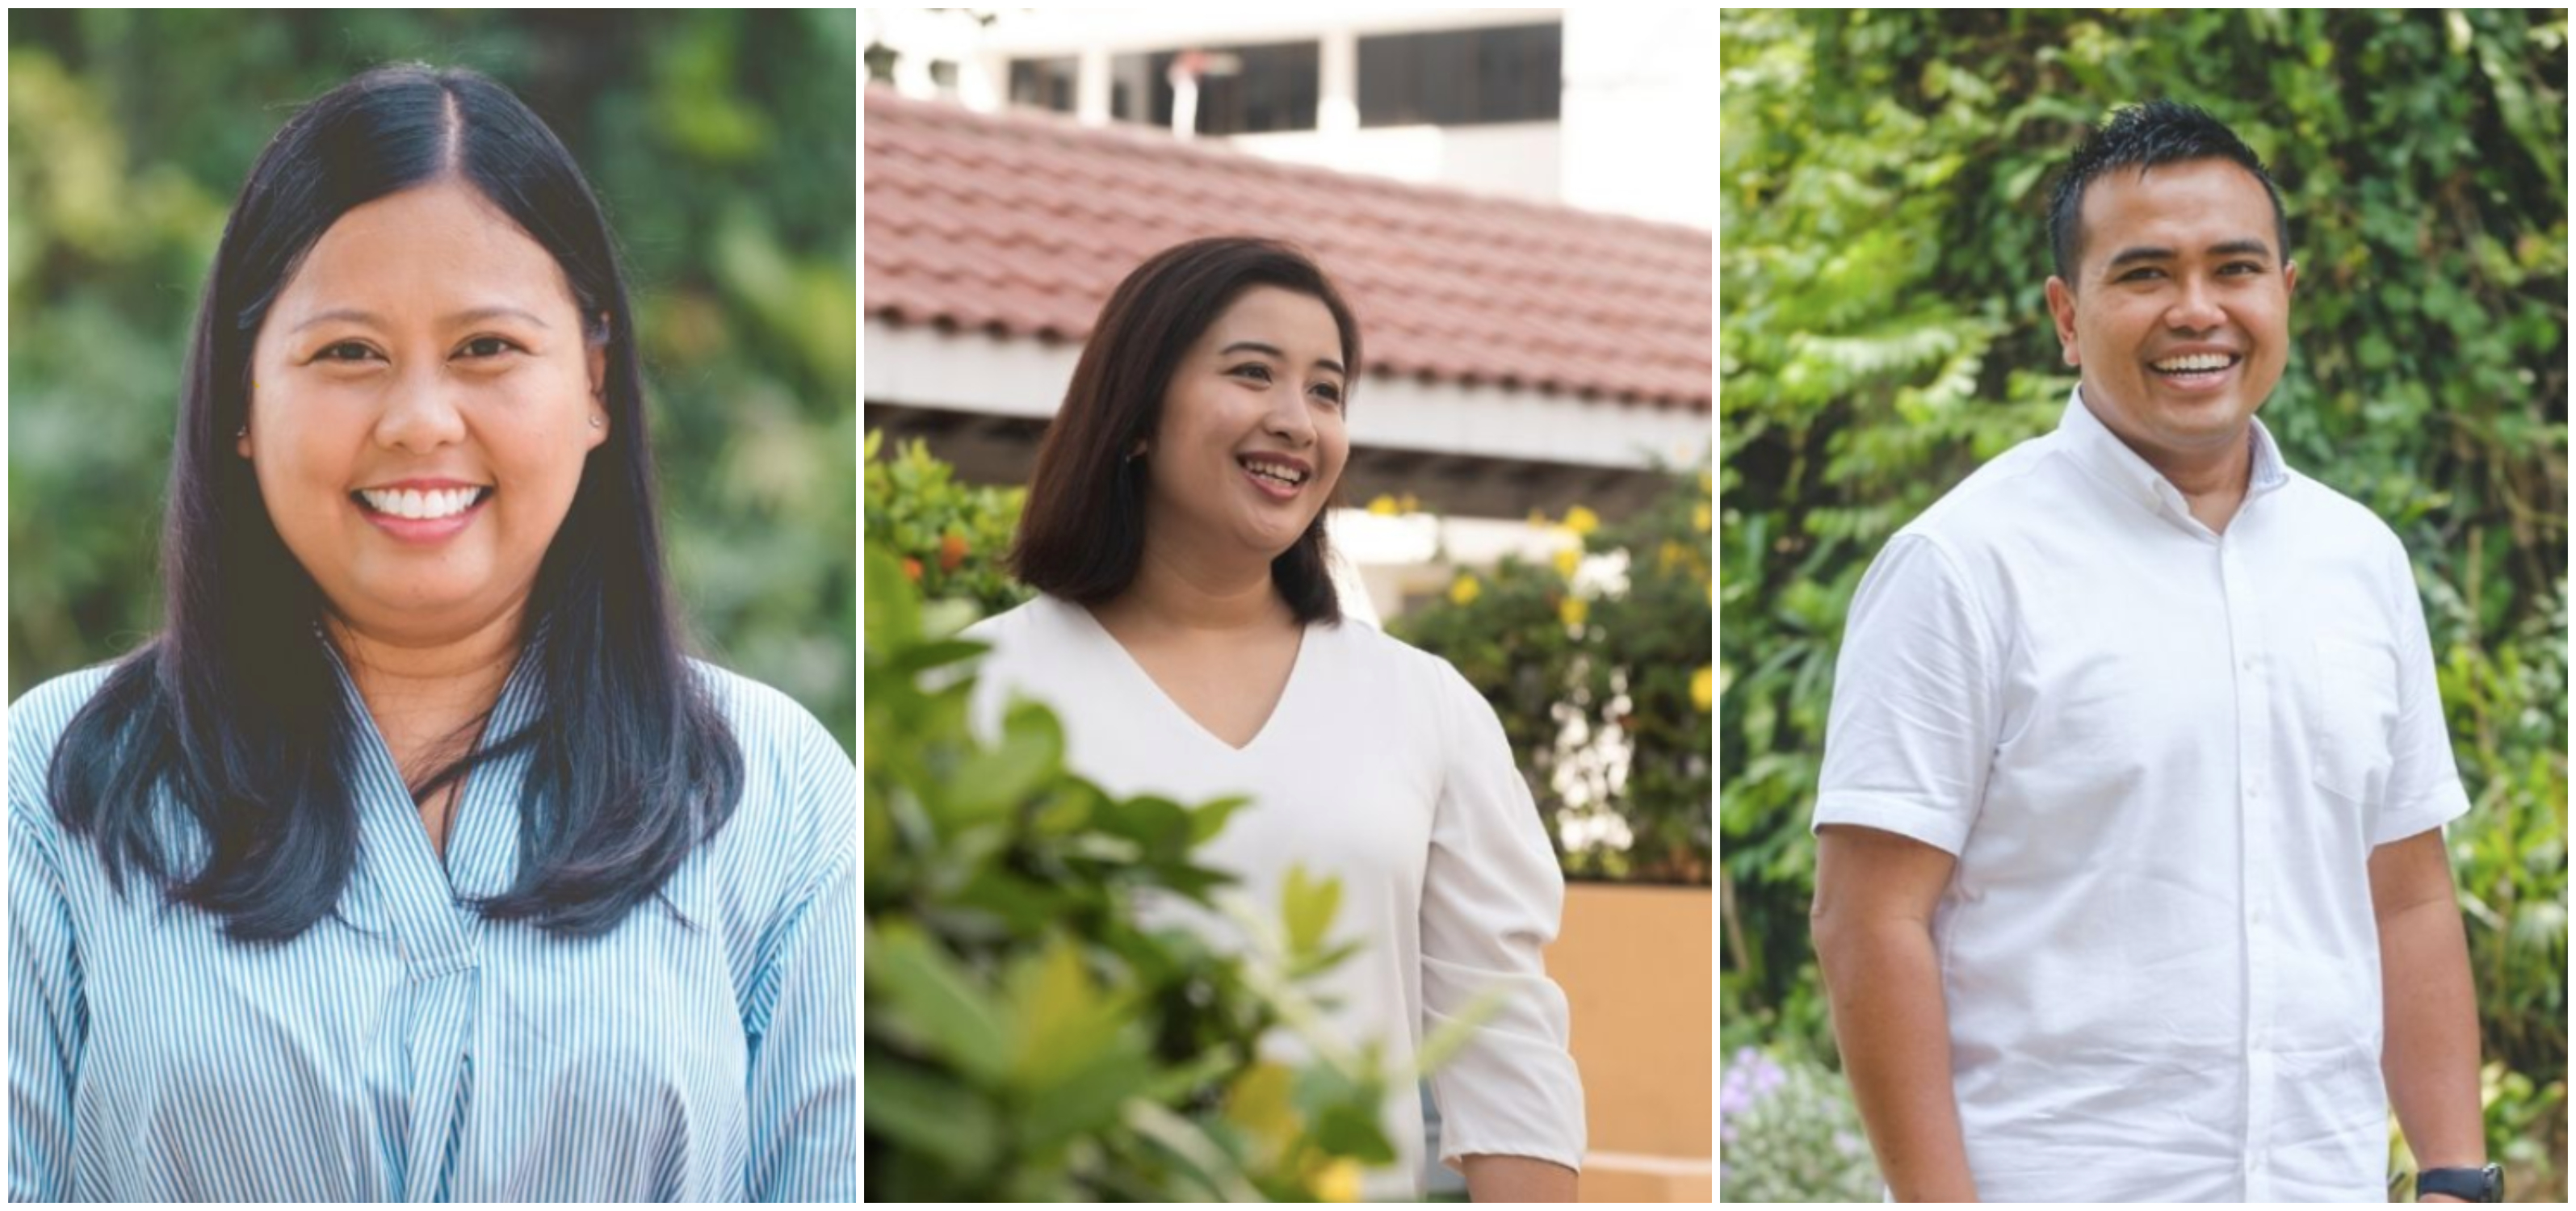 Is A Diverse Parliament Enough To Address Systemic Inequality? Minority Singaporeans Tell Us